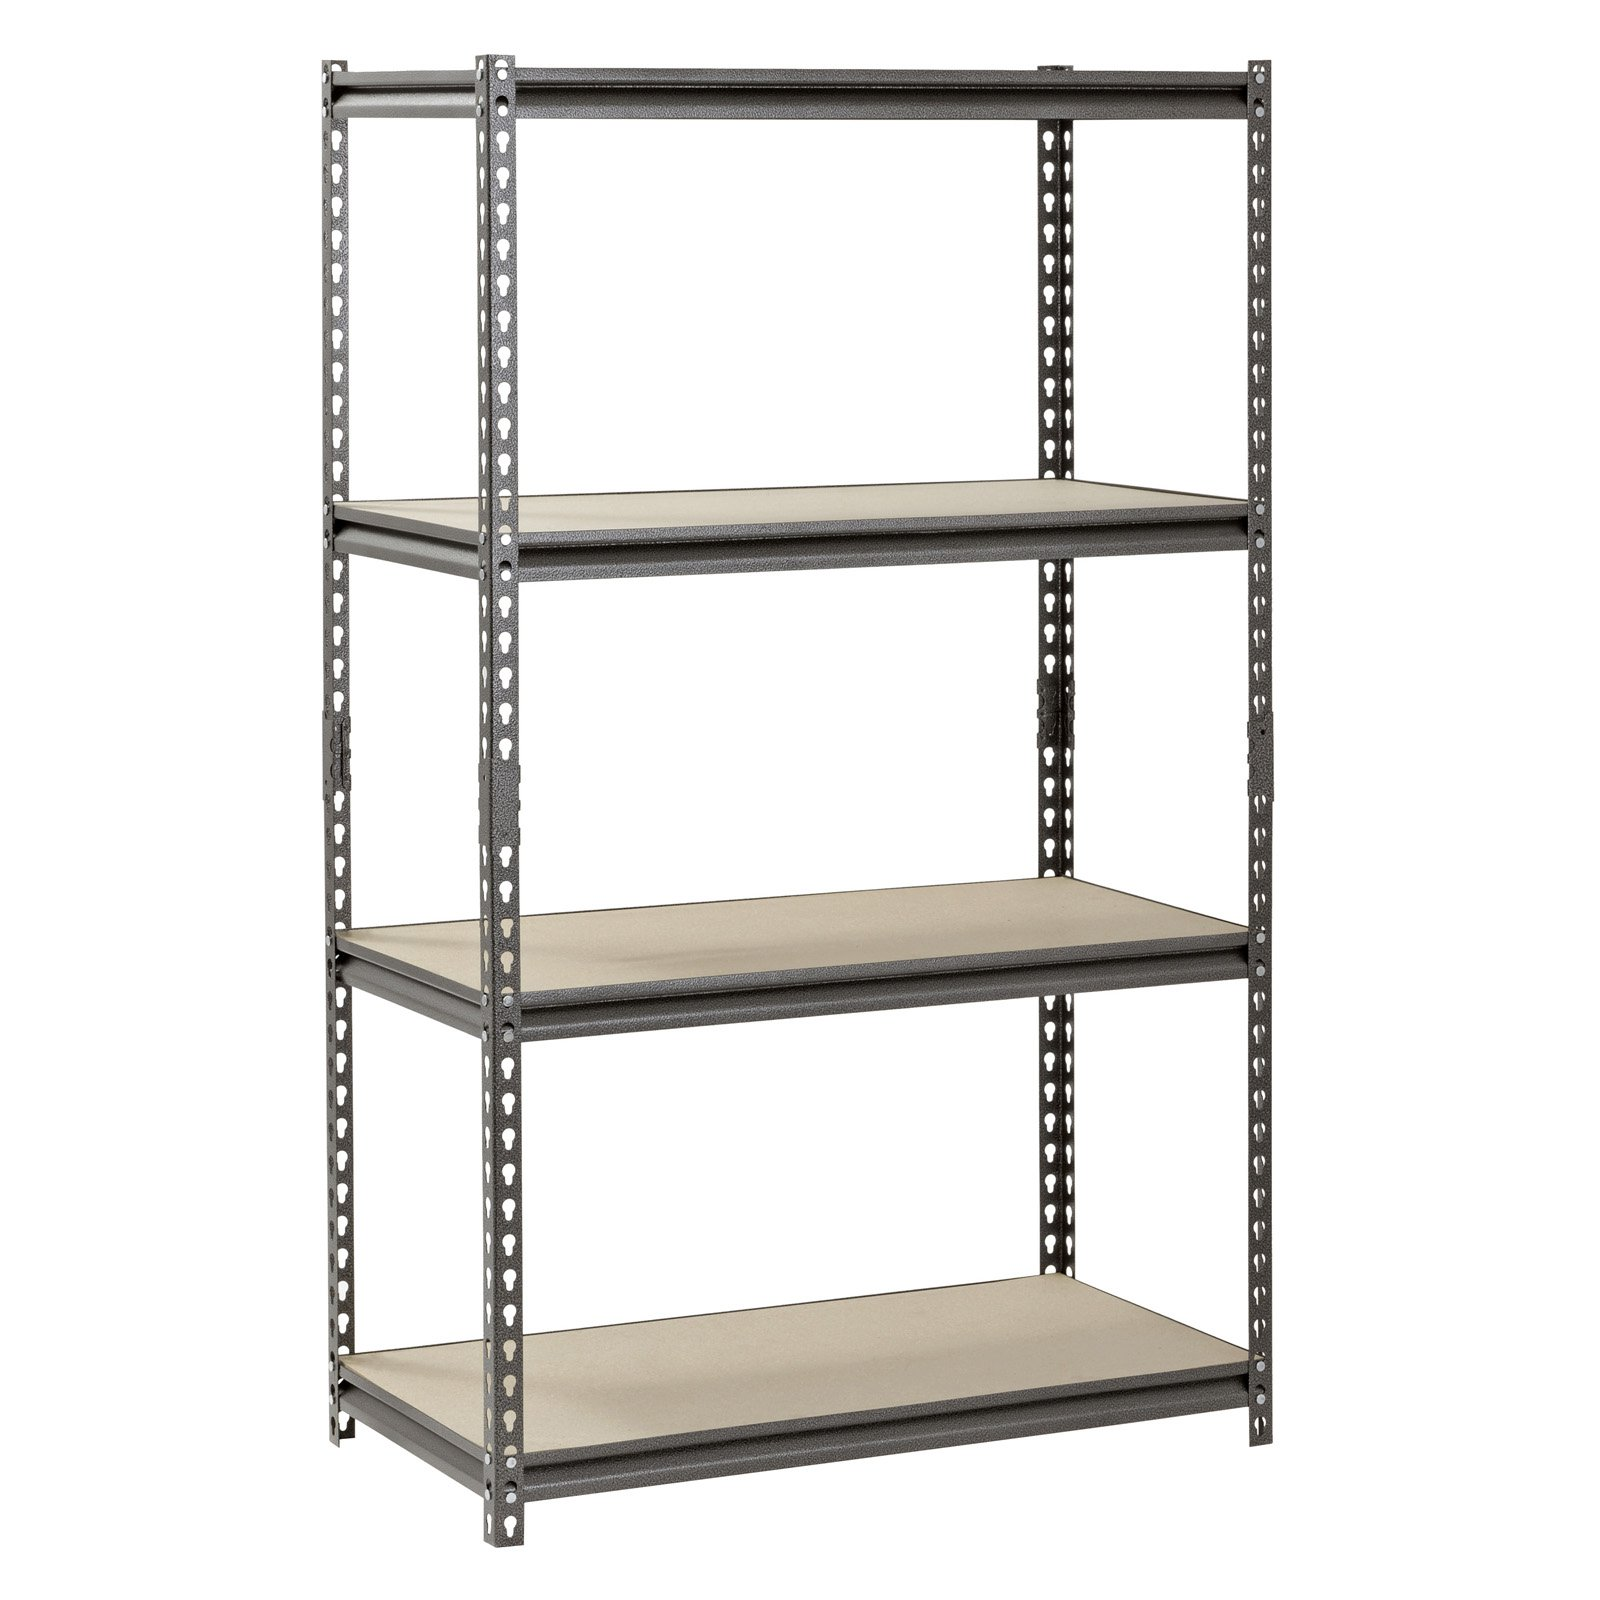 "Muscle Rack 4-Shelf Steel Shelving, Silver-Vein, 18"" D x 36"" W x 60"" H"